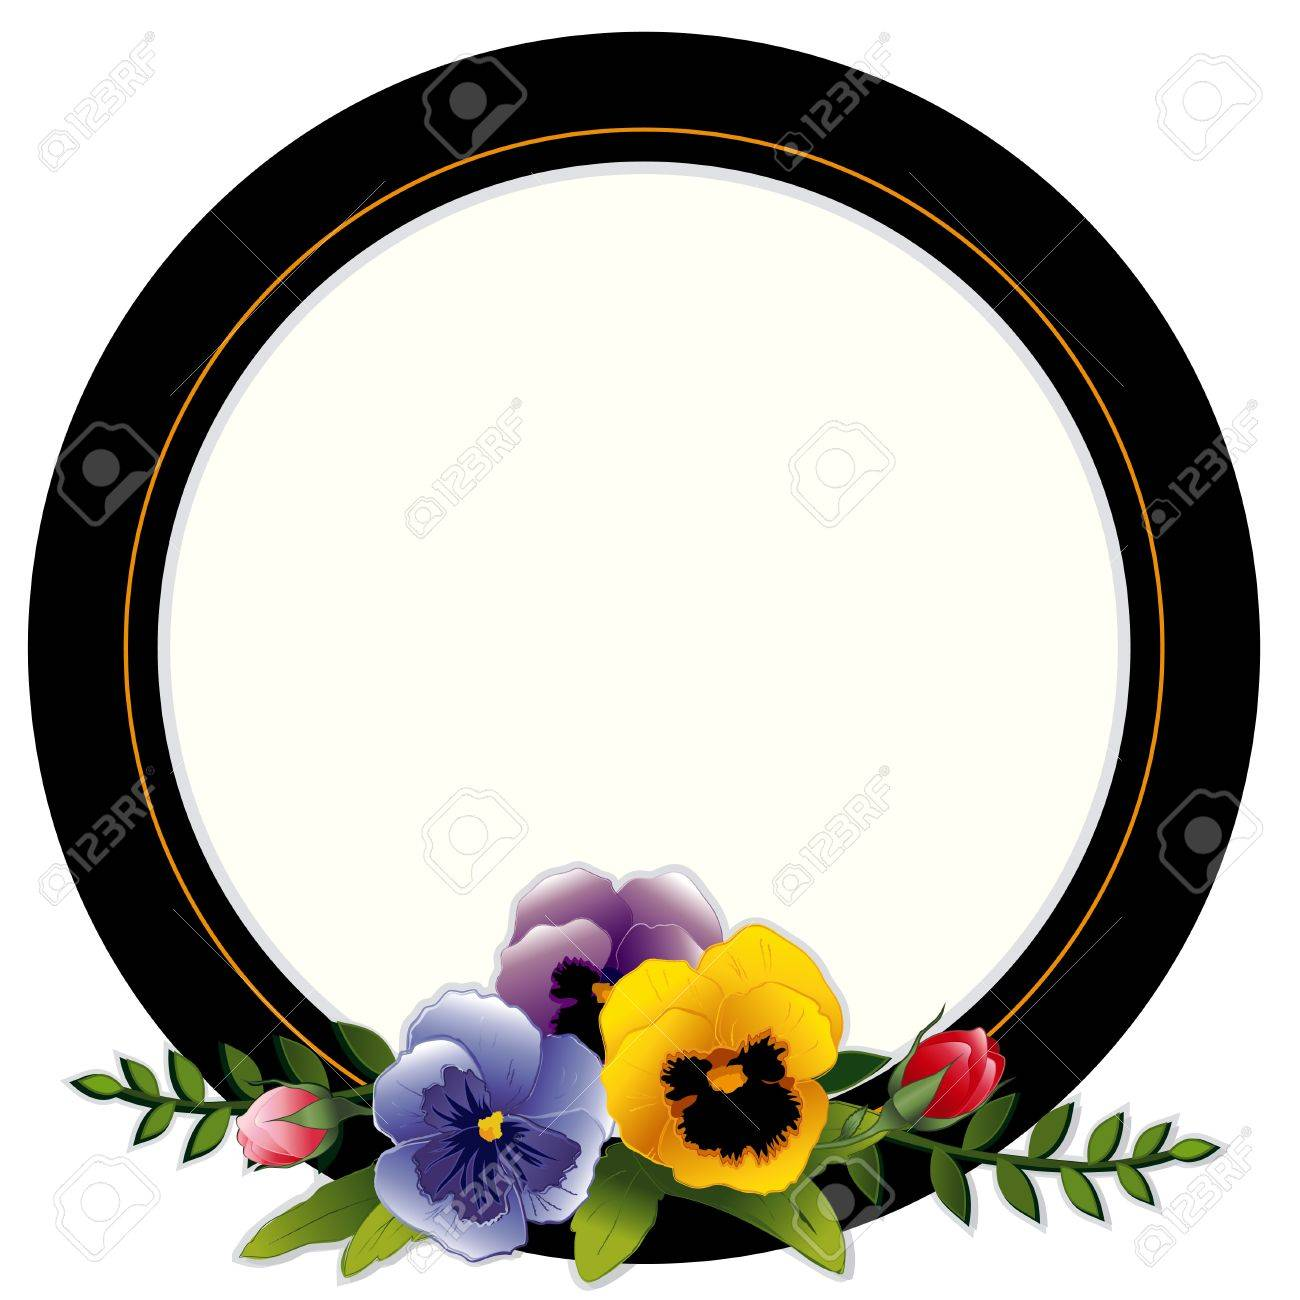 Vintage Frame, Pansies and Roses. Copy space for your text or picture. Traditional for gift tag, card, label, stationery, or announcement for celebrations, holidays, scrapbooks, albums. Stock Vector - 12392270